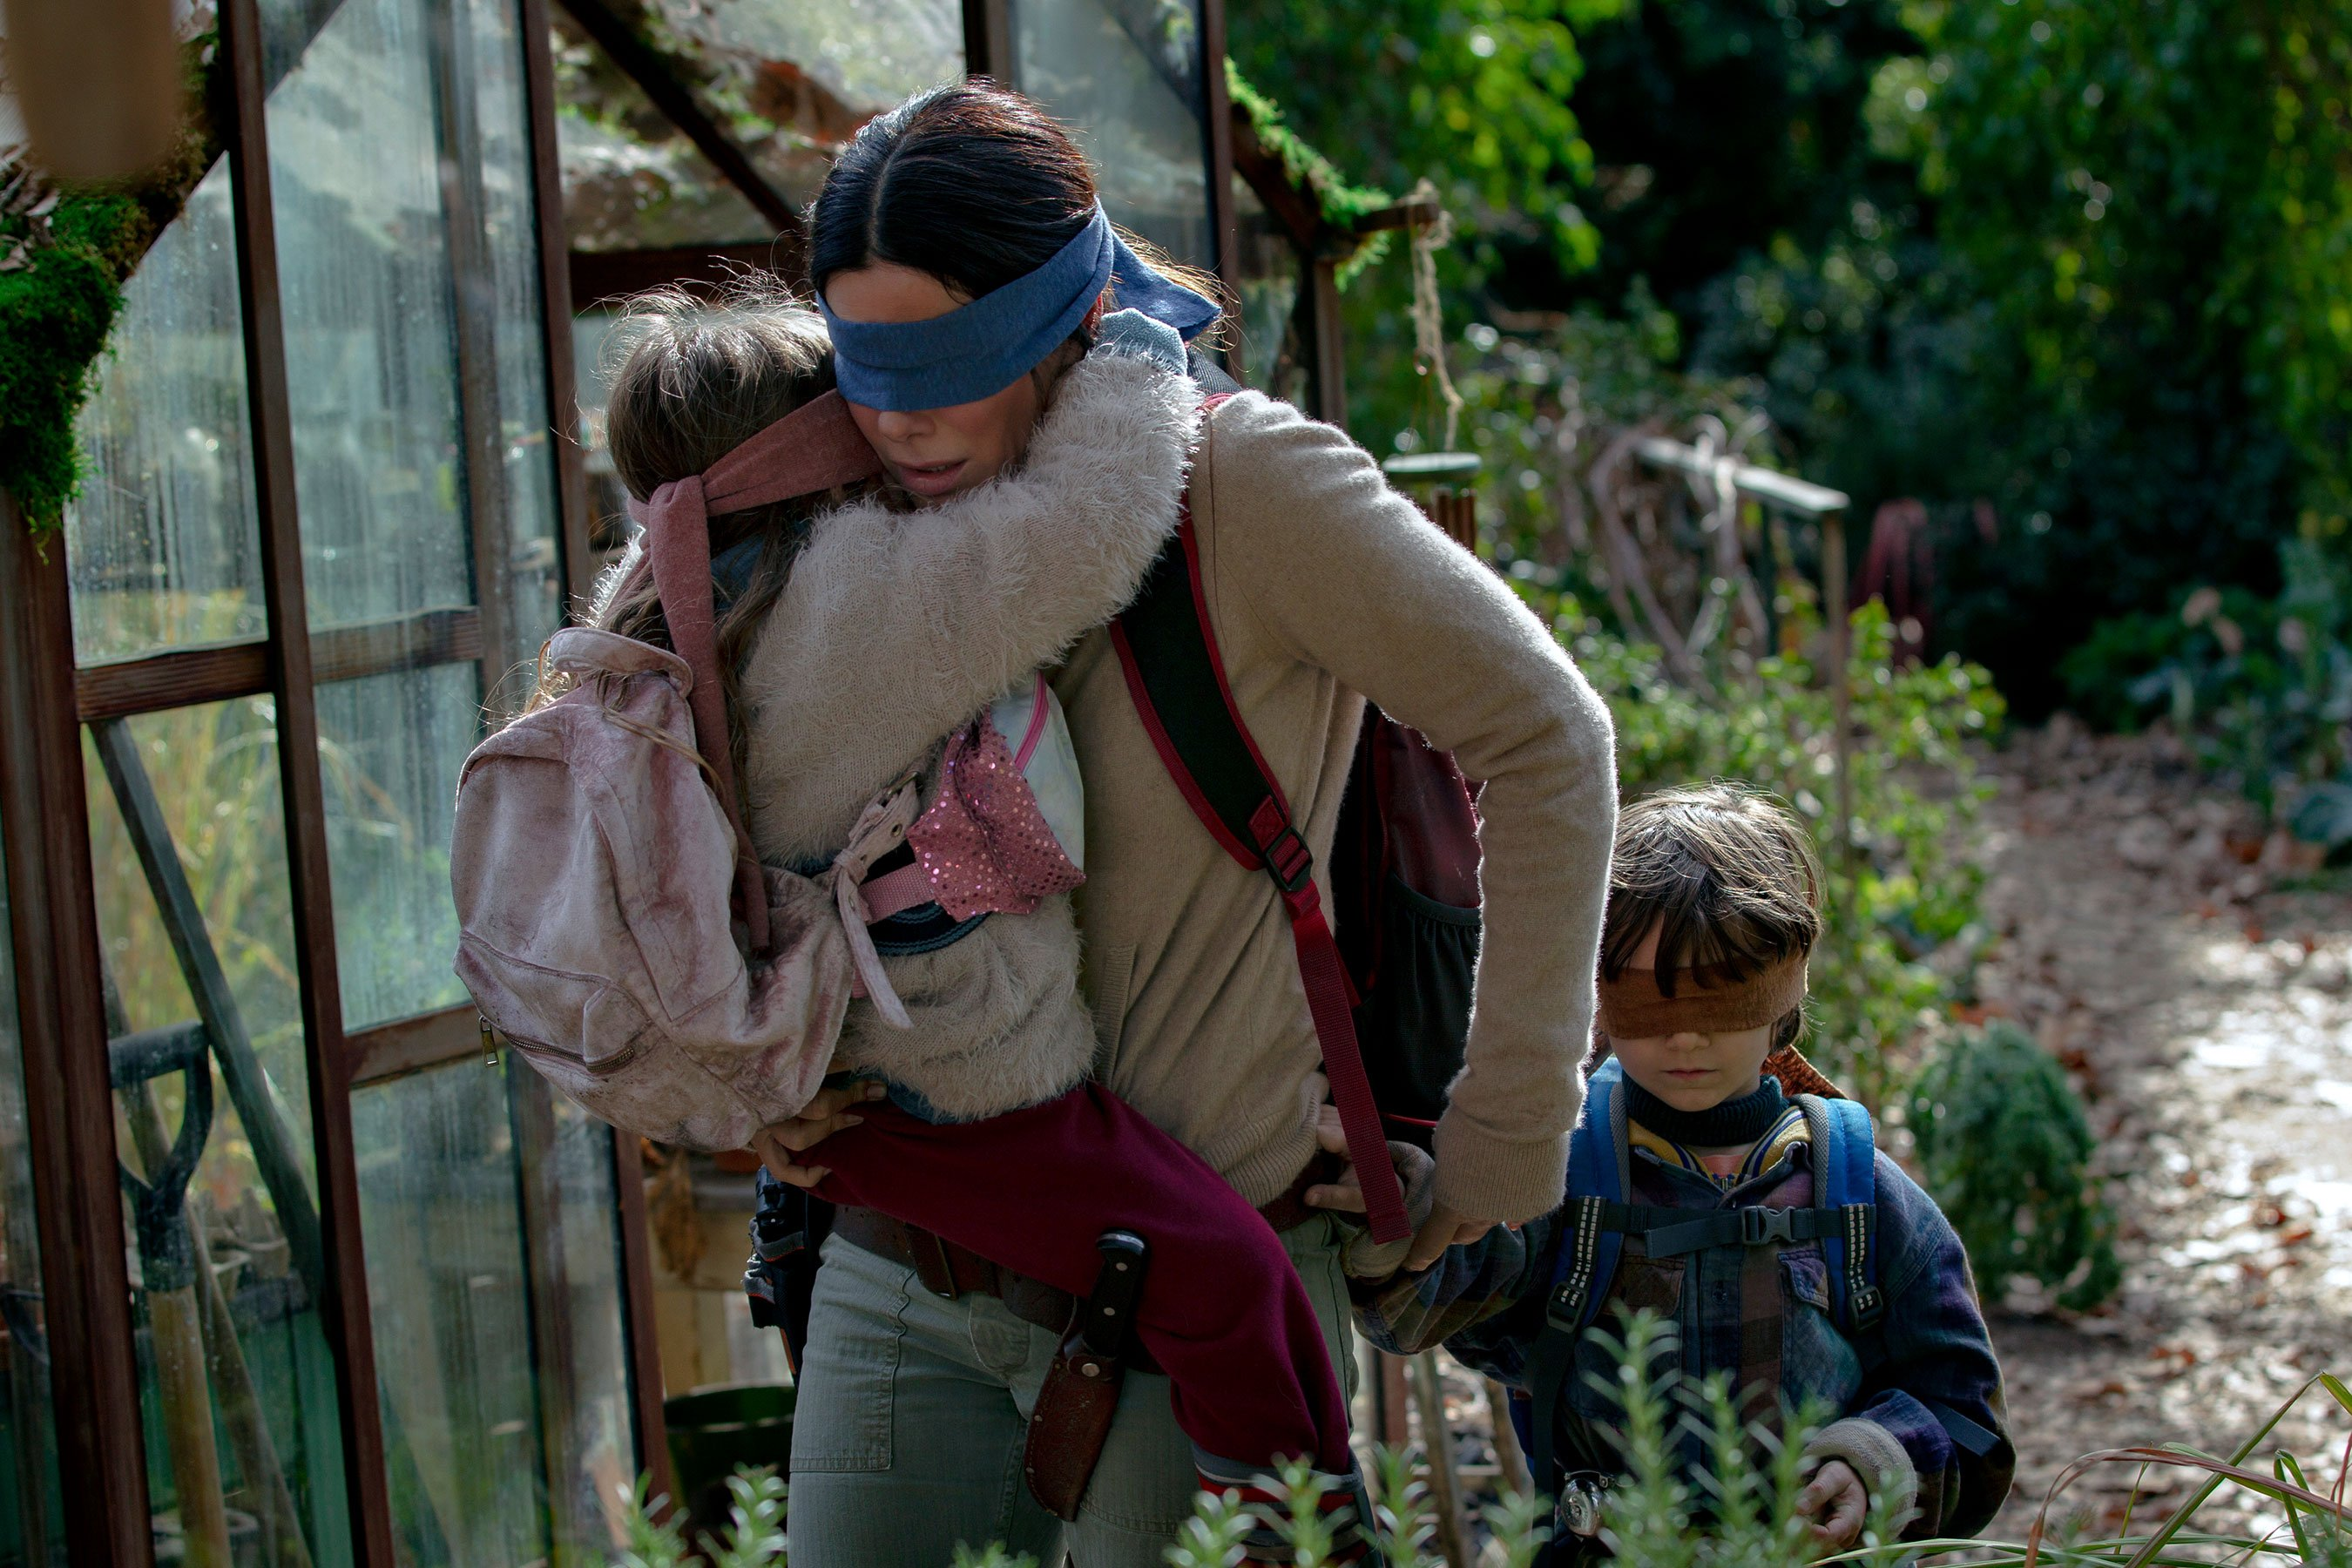 Bird Box review: Sandra Bullock stars in slow-burn dystopian thriller